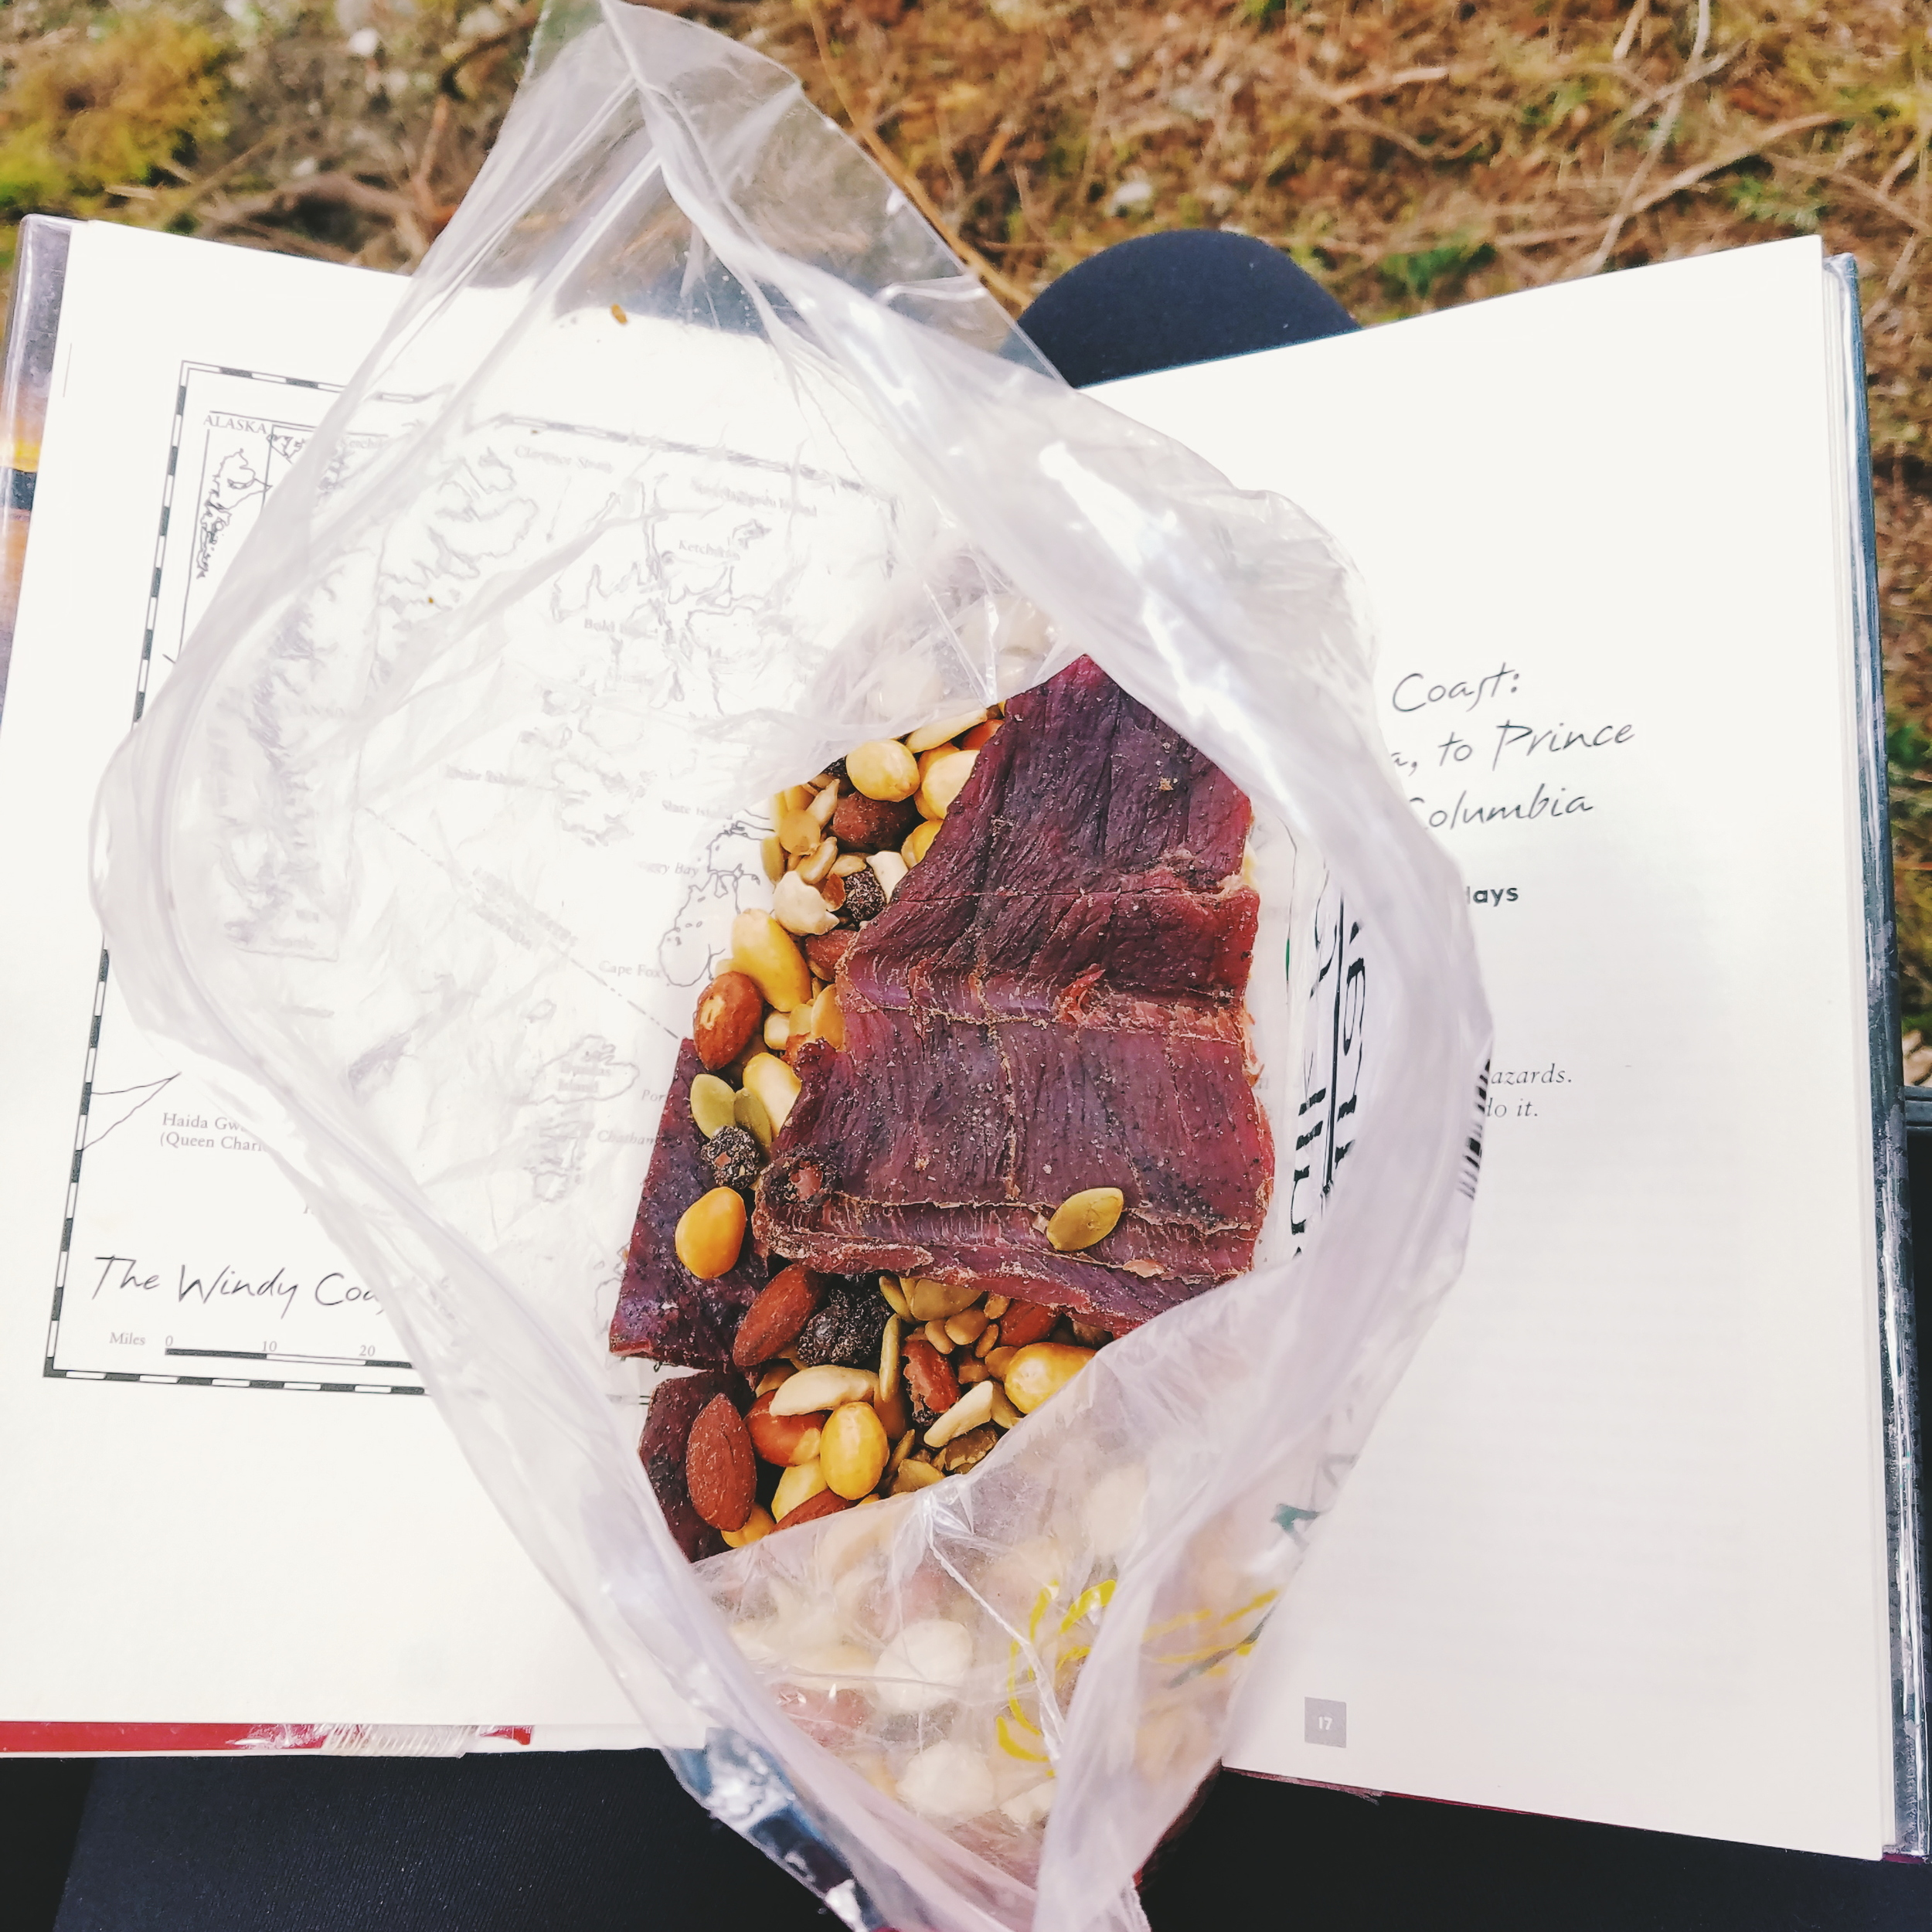 Trail lunch: gorp with a few hunks of jerky thrown in